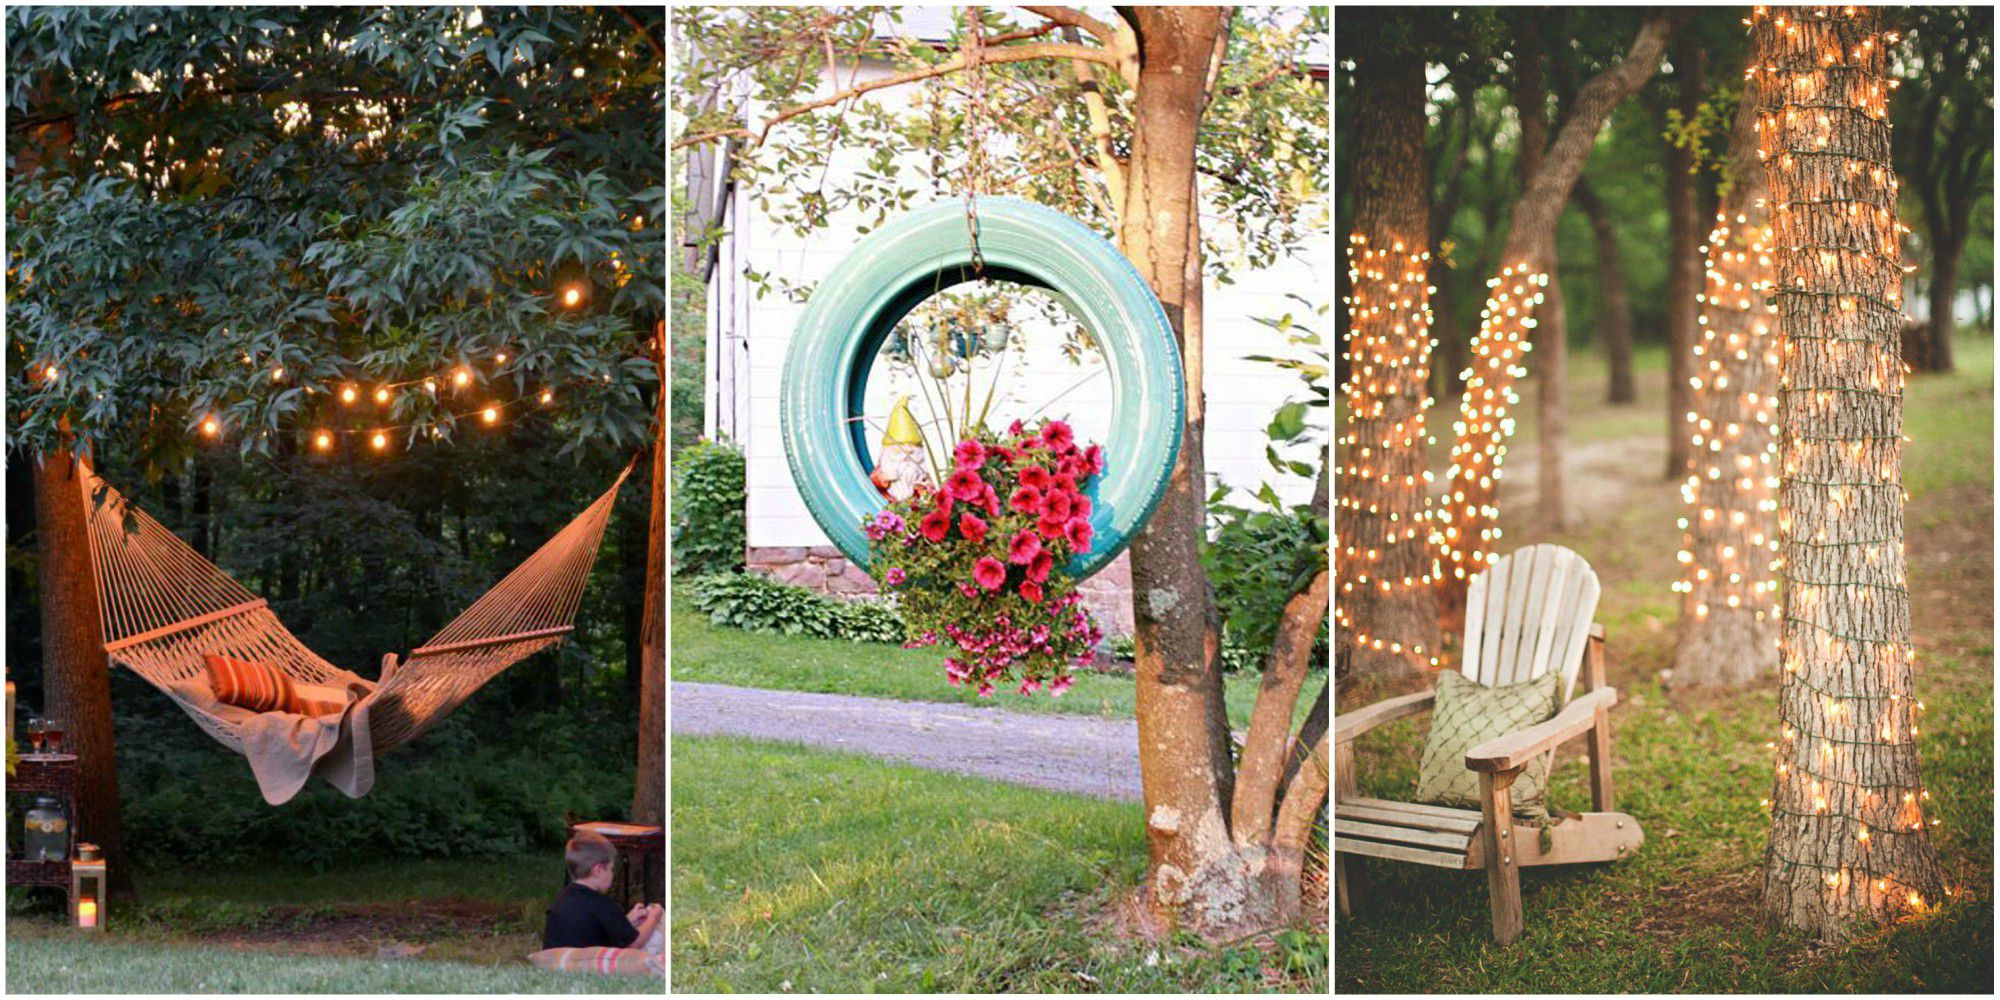 82 Diy Backyard Design Ideas Diy Backyard Decor Tips in 12 Some of the Coolest Initiatives of How to Build Backyard Decorations